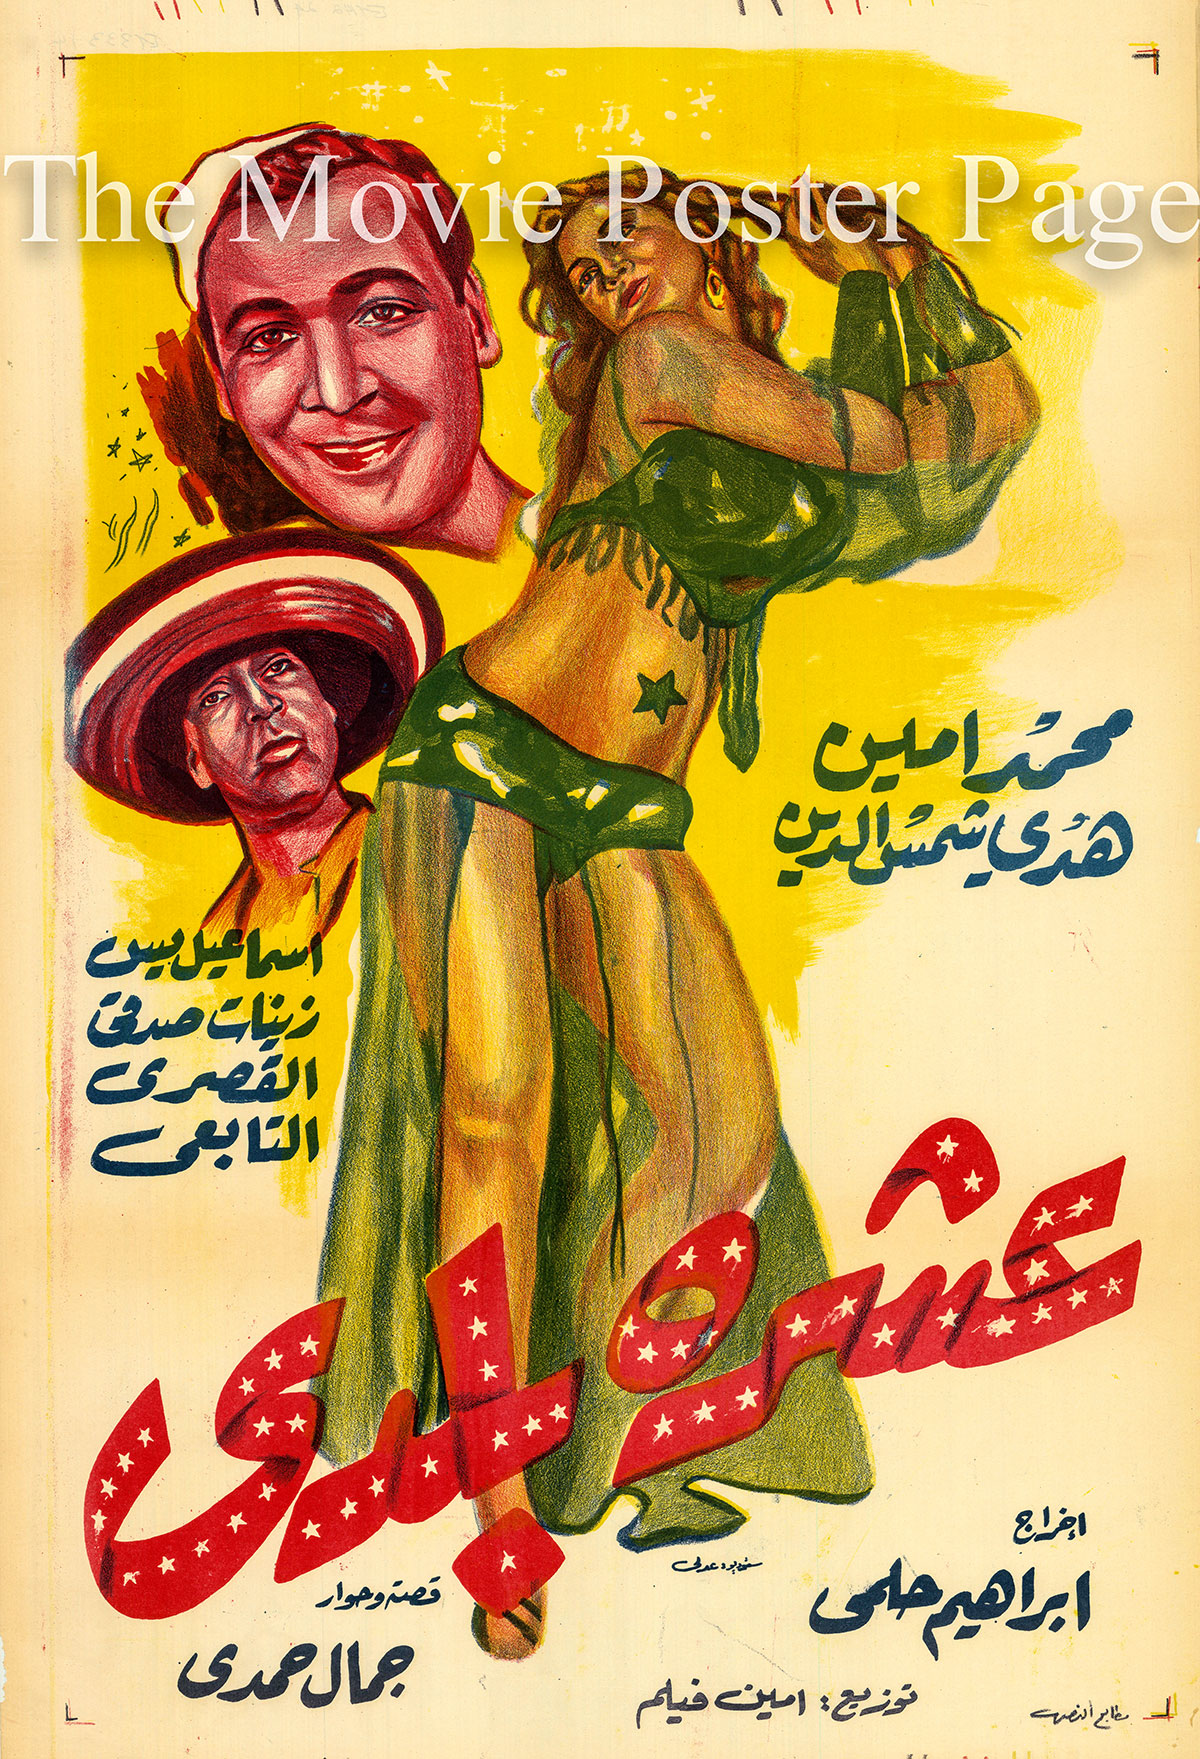 Pictured is an Egyptian promotional poster for the 1952 Ibrahim Helmi film Ten from the Country starring Mohammad Amin as himself.